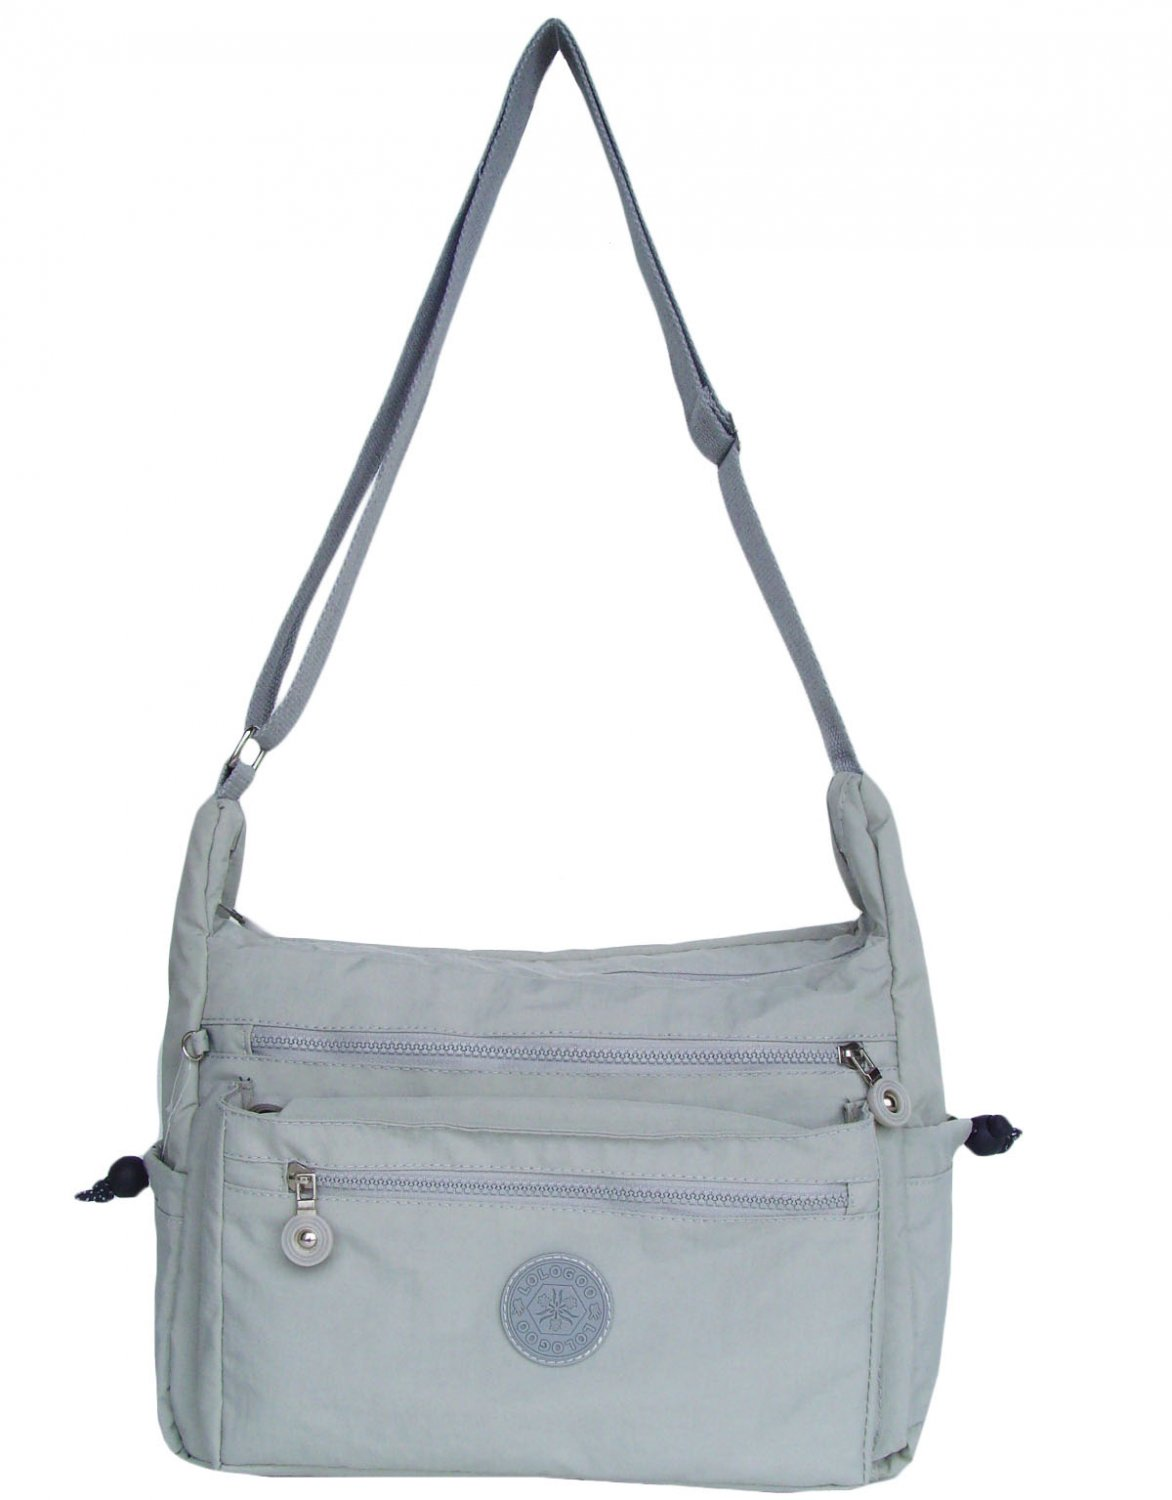 HONG YE Pure Stripe Slouch Bag,sku:hb80light1